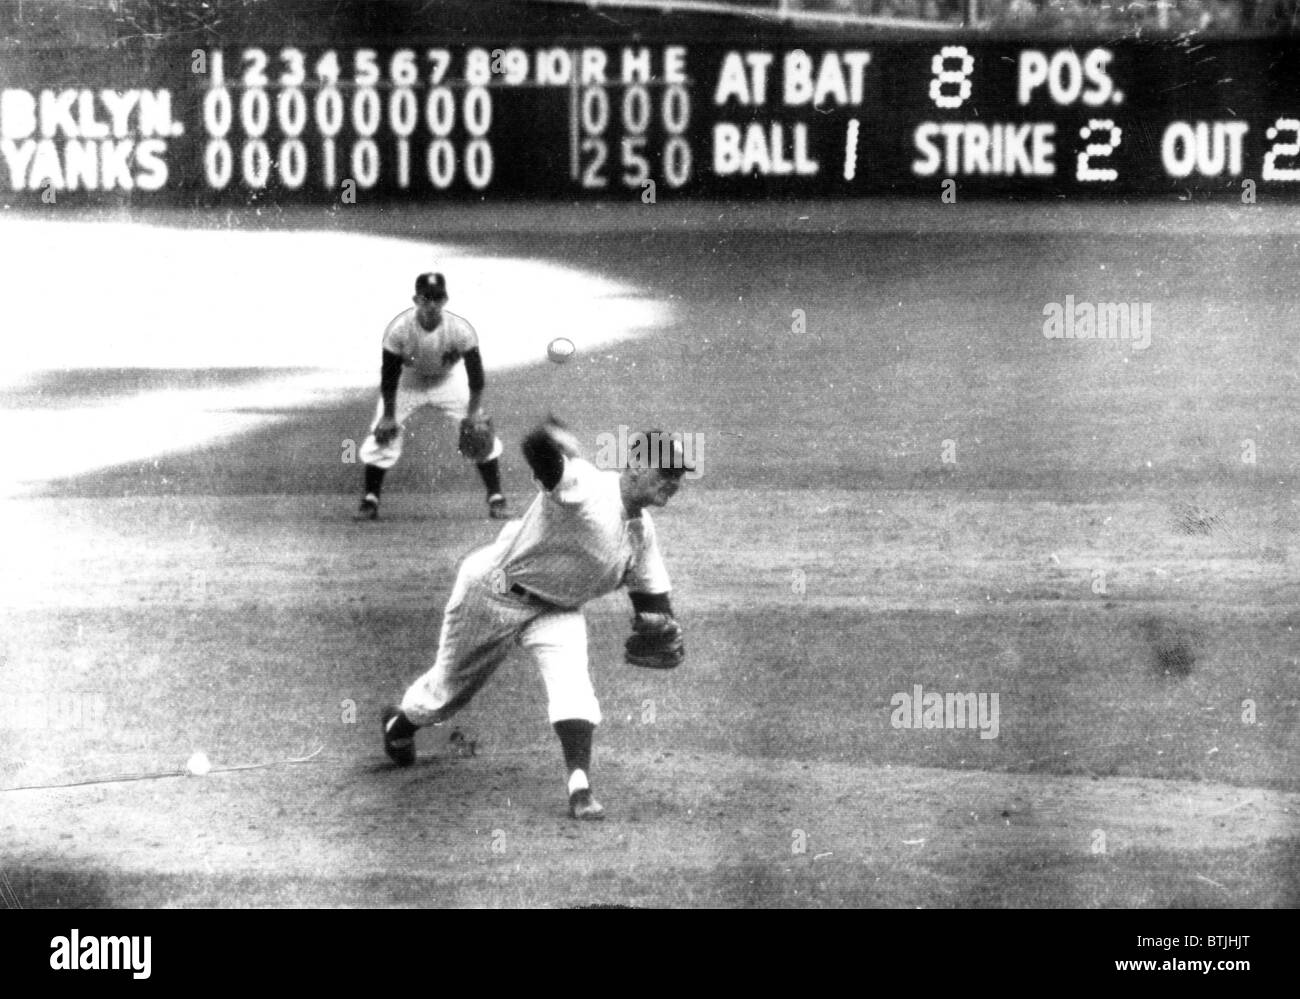 Don Larsen of the NY Yankees pitches perfect game against Brooklyn